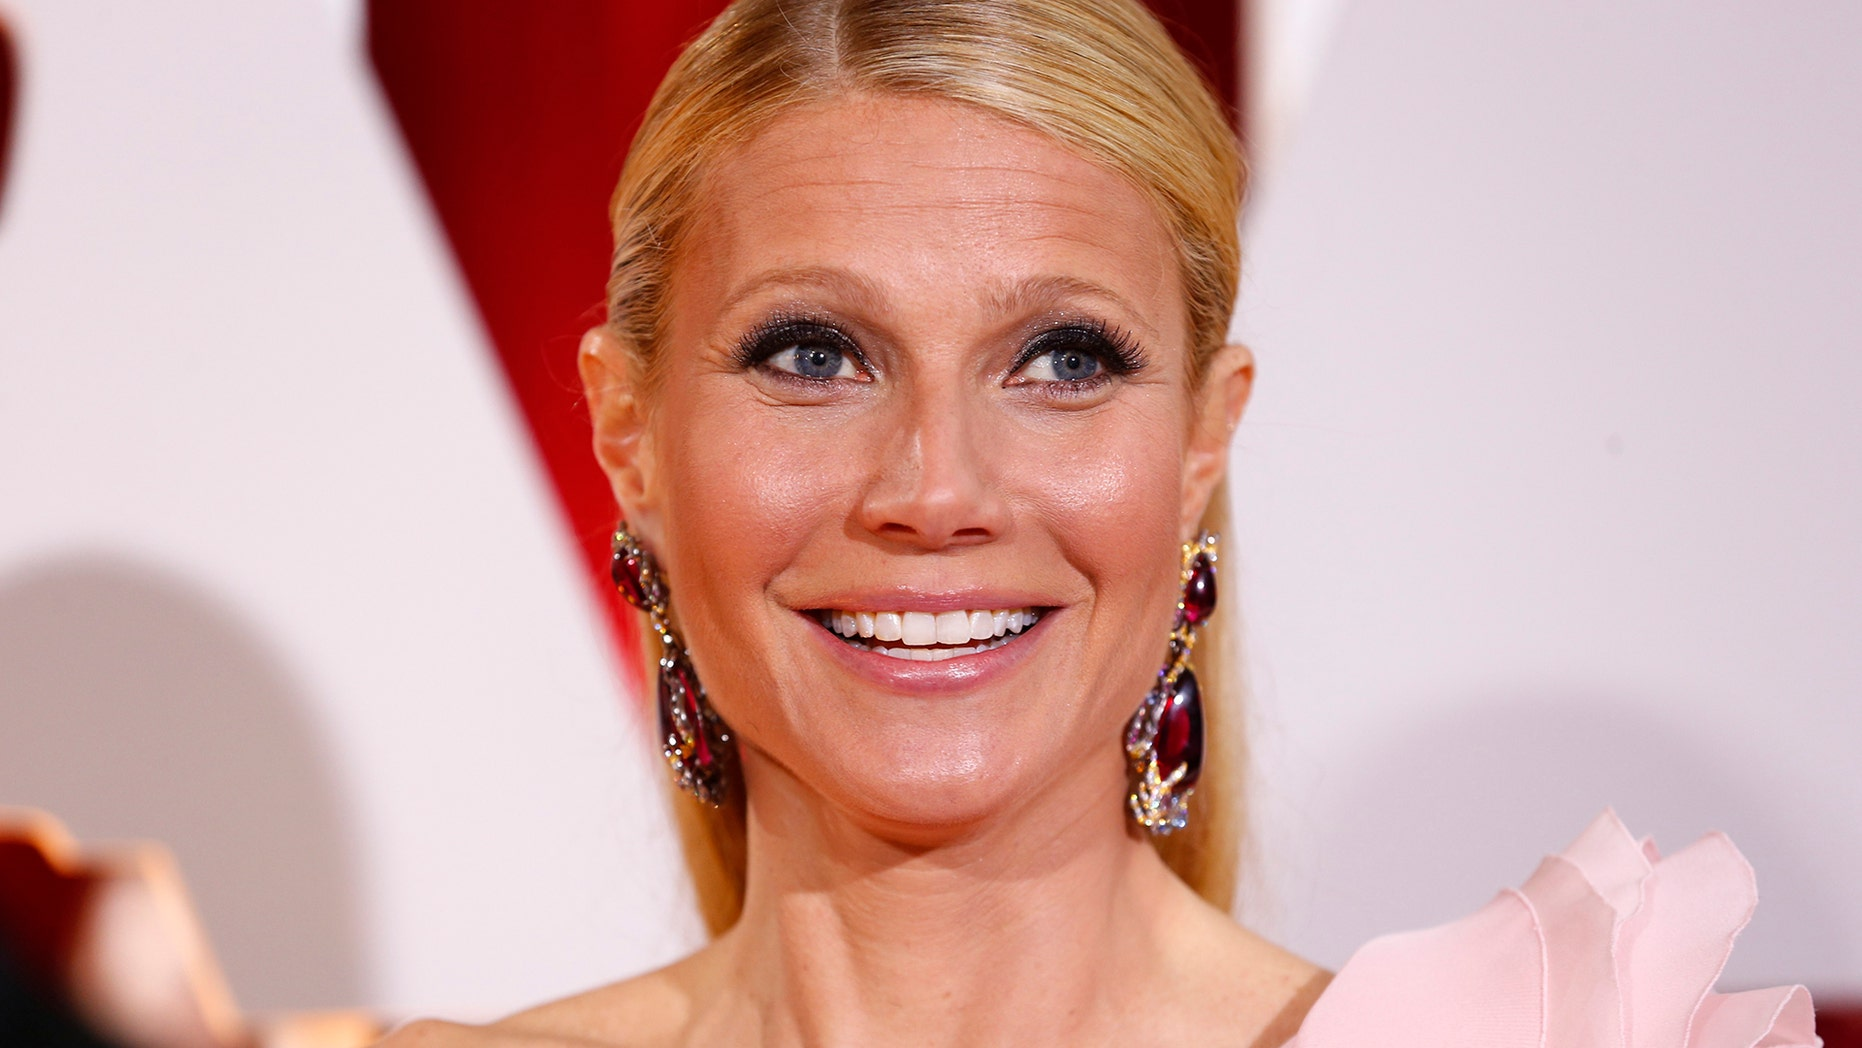 Actress Gwyneth Paltrow, wearing a custom Ralph & Russo pink one sleeve gown with a giant flower on the shoulder, arrives at the 87th Academy Awards in Hollywood, California February 22, 2015.